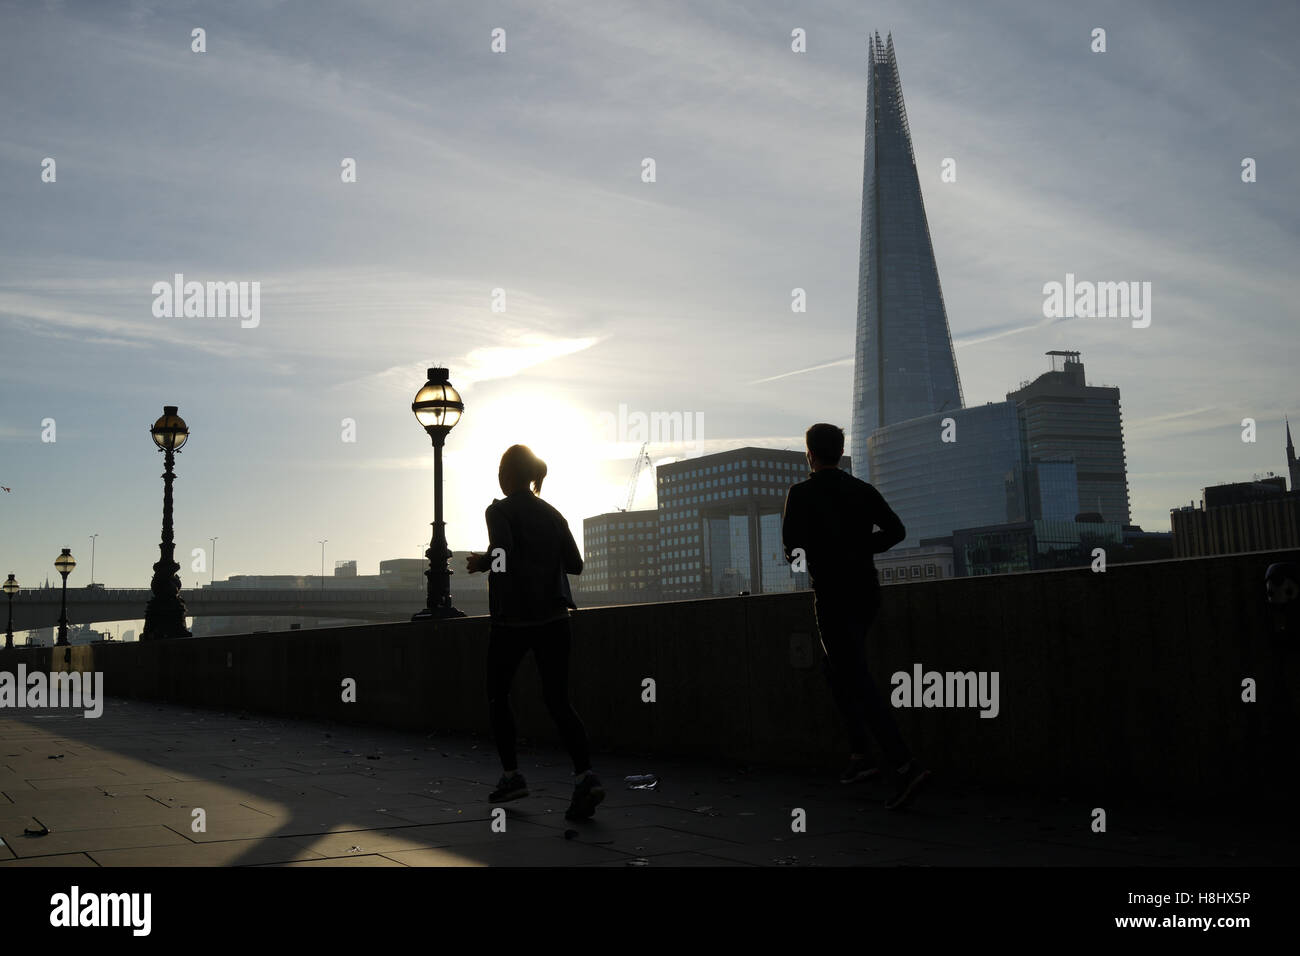 Un couple en marche le long de la rivière Thames, London Photo Stock